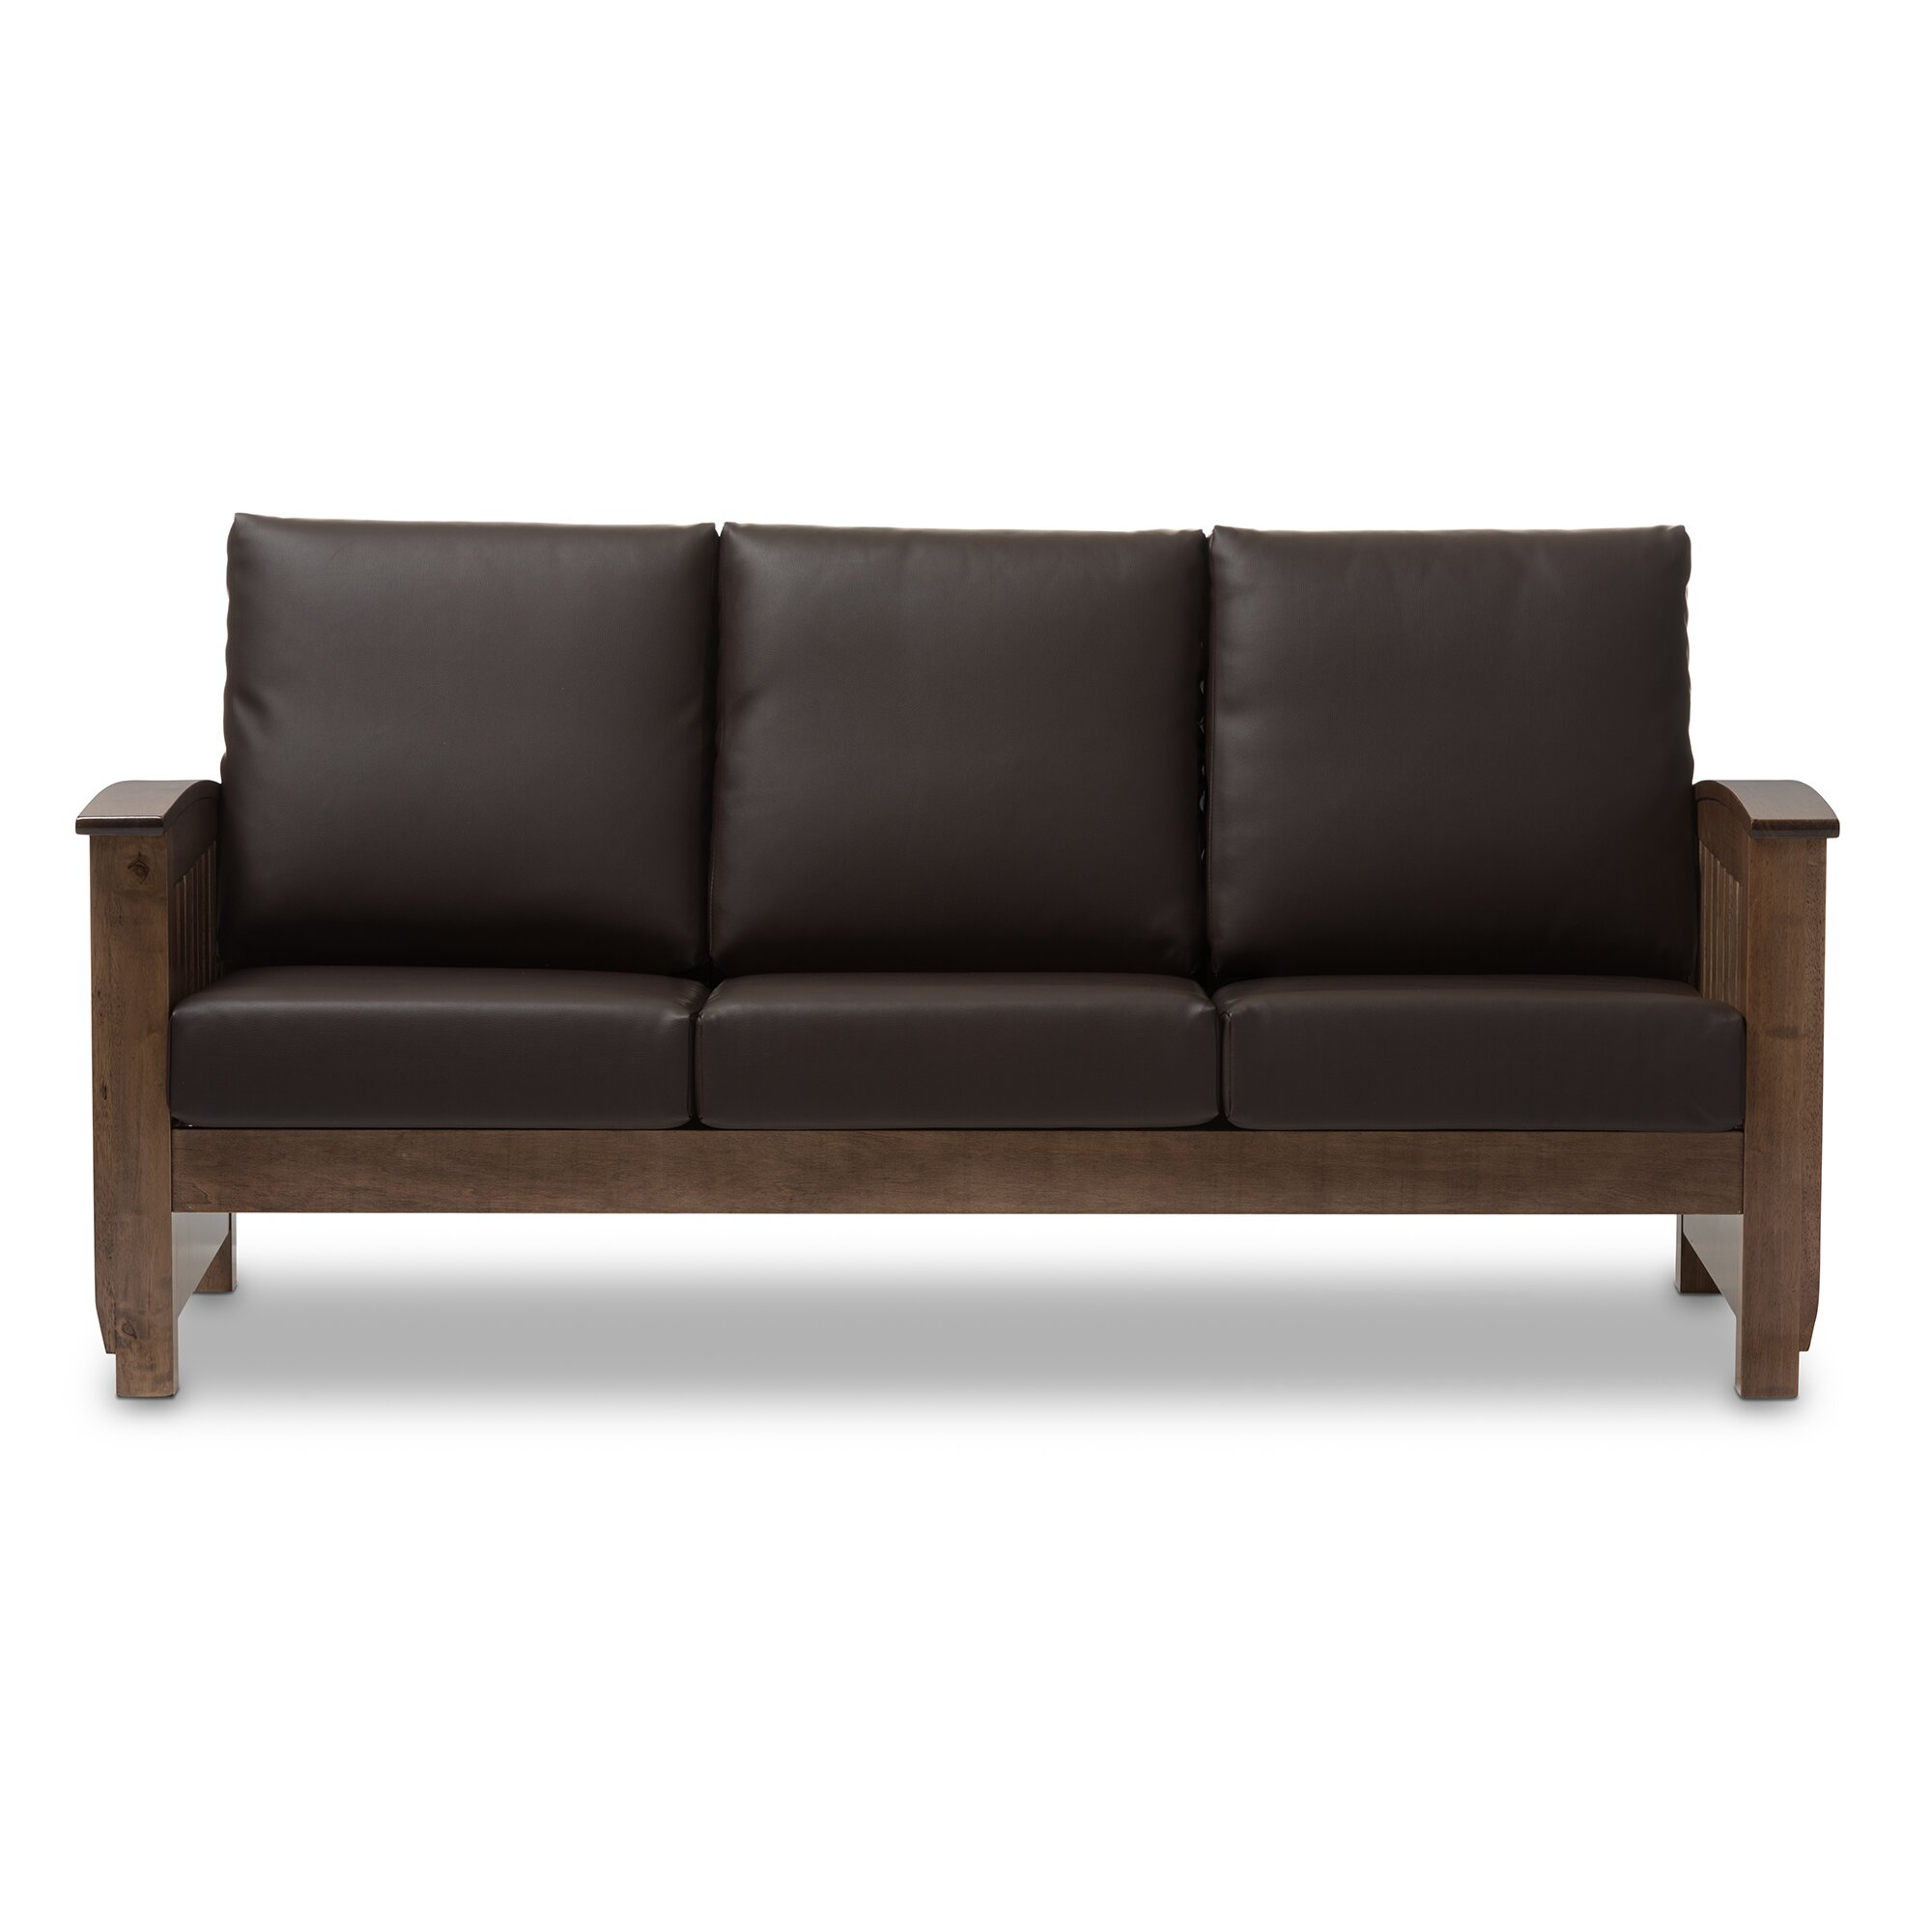 Wholesale Interiors Baxton Studio Benigno 3 Seater Sofa